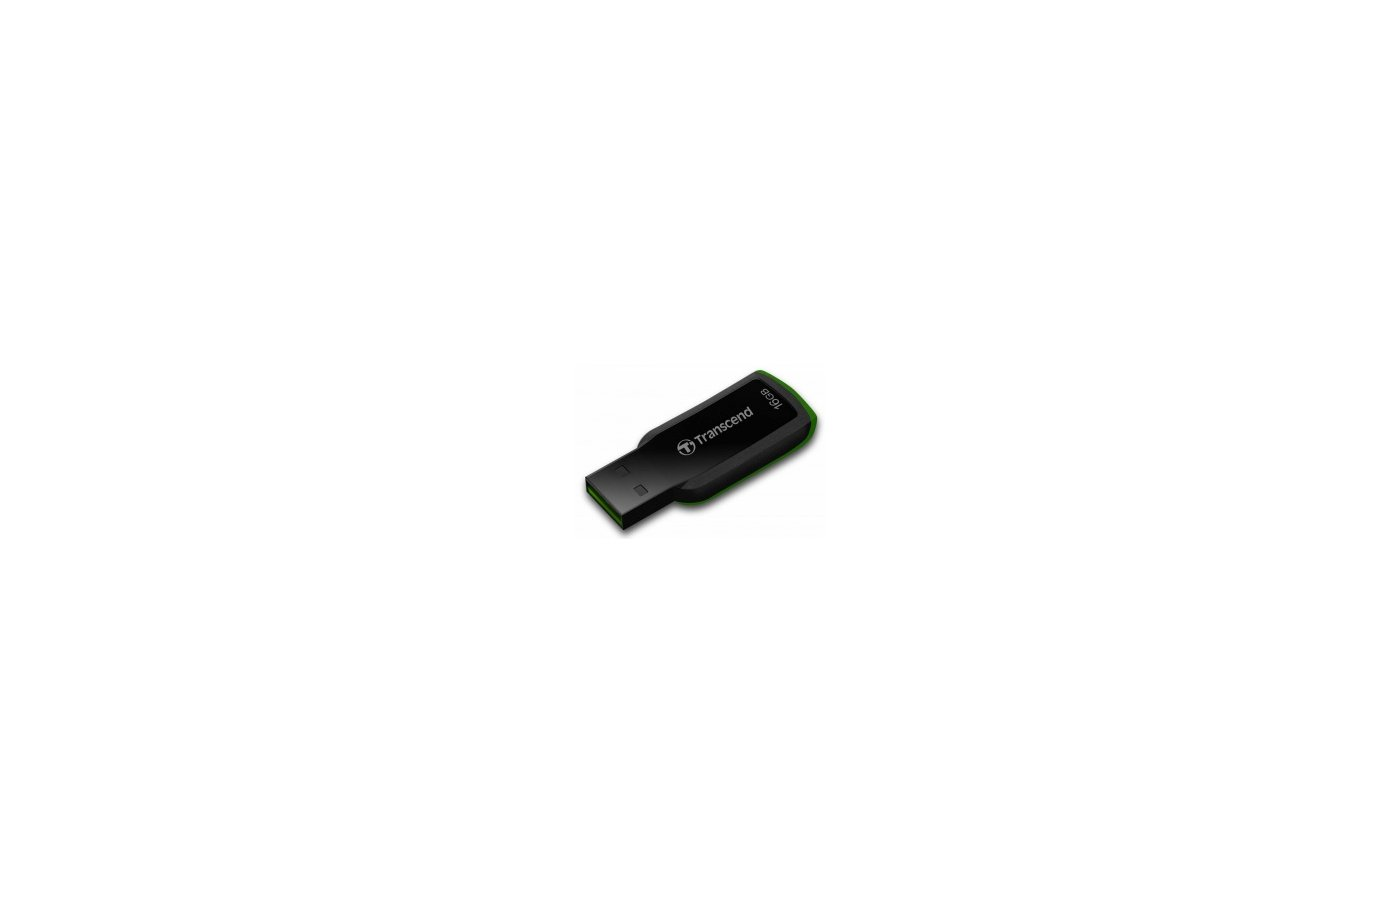 Флеш-диск USB 2.0 Transcend Jet Flash 360 16GB (TS16GJF360)